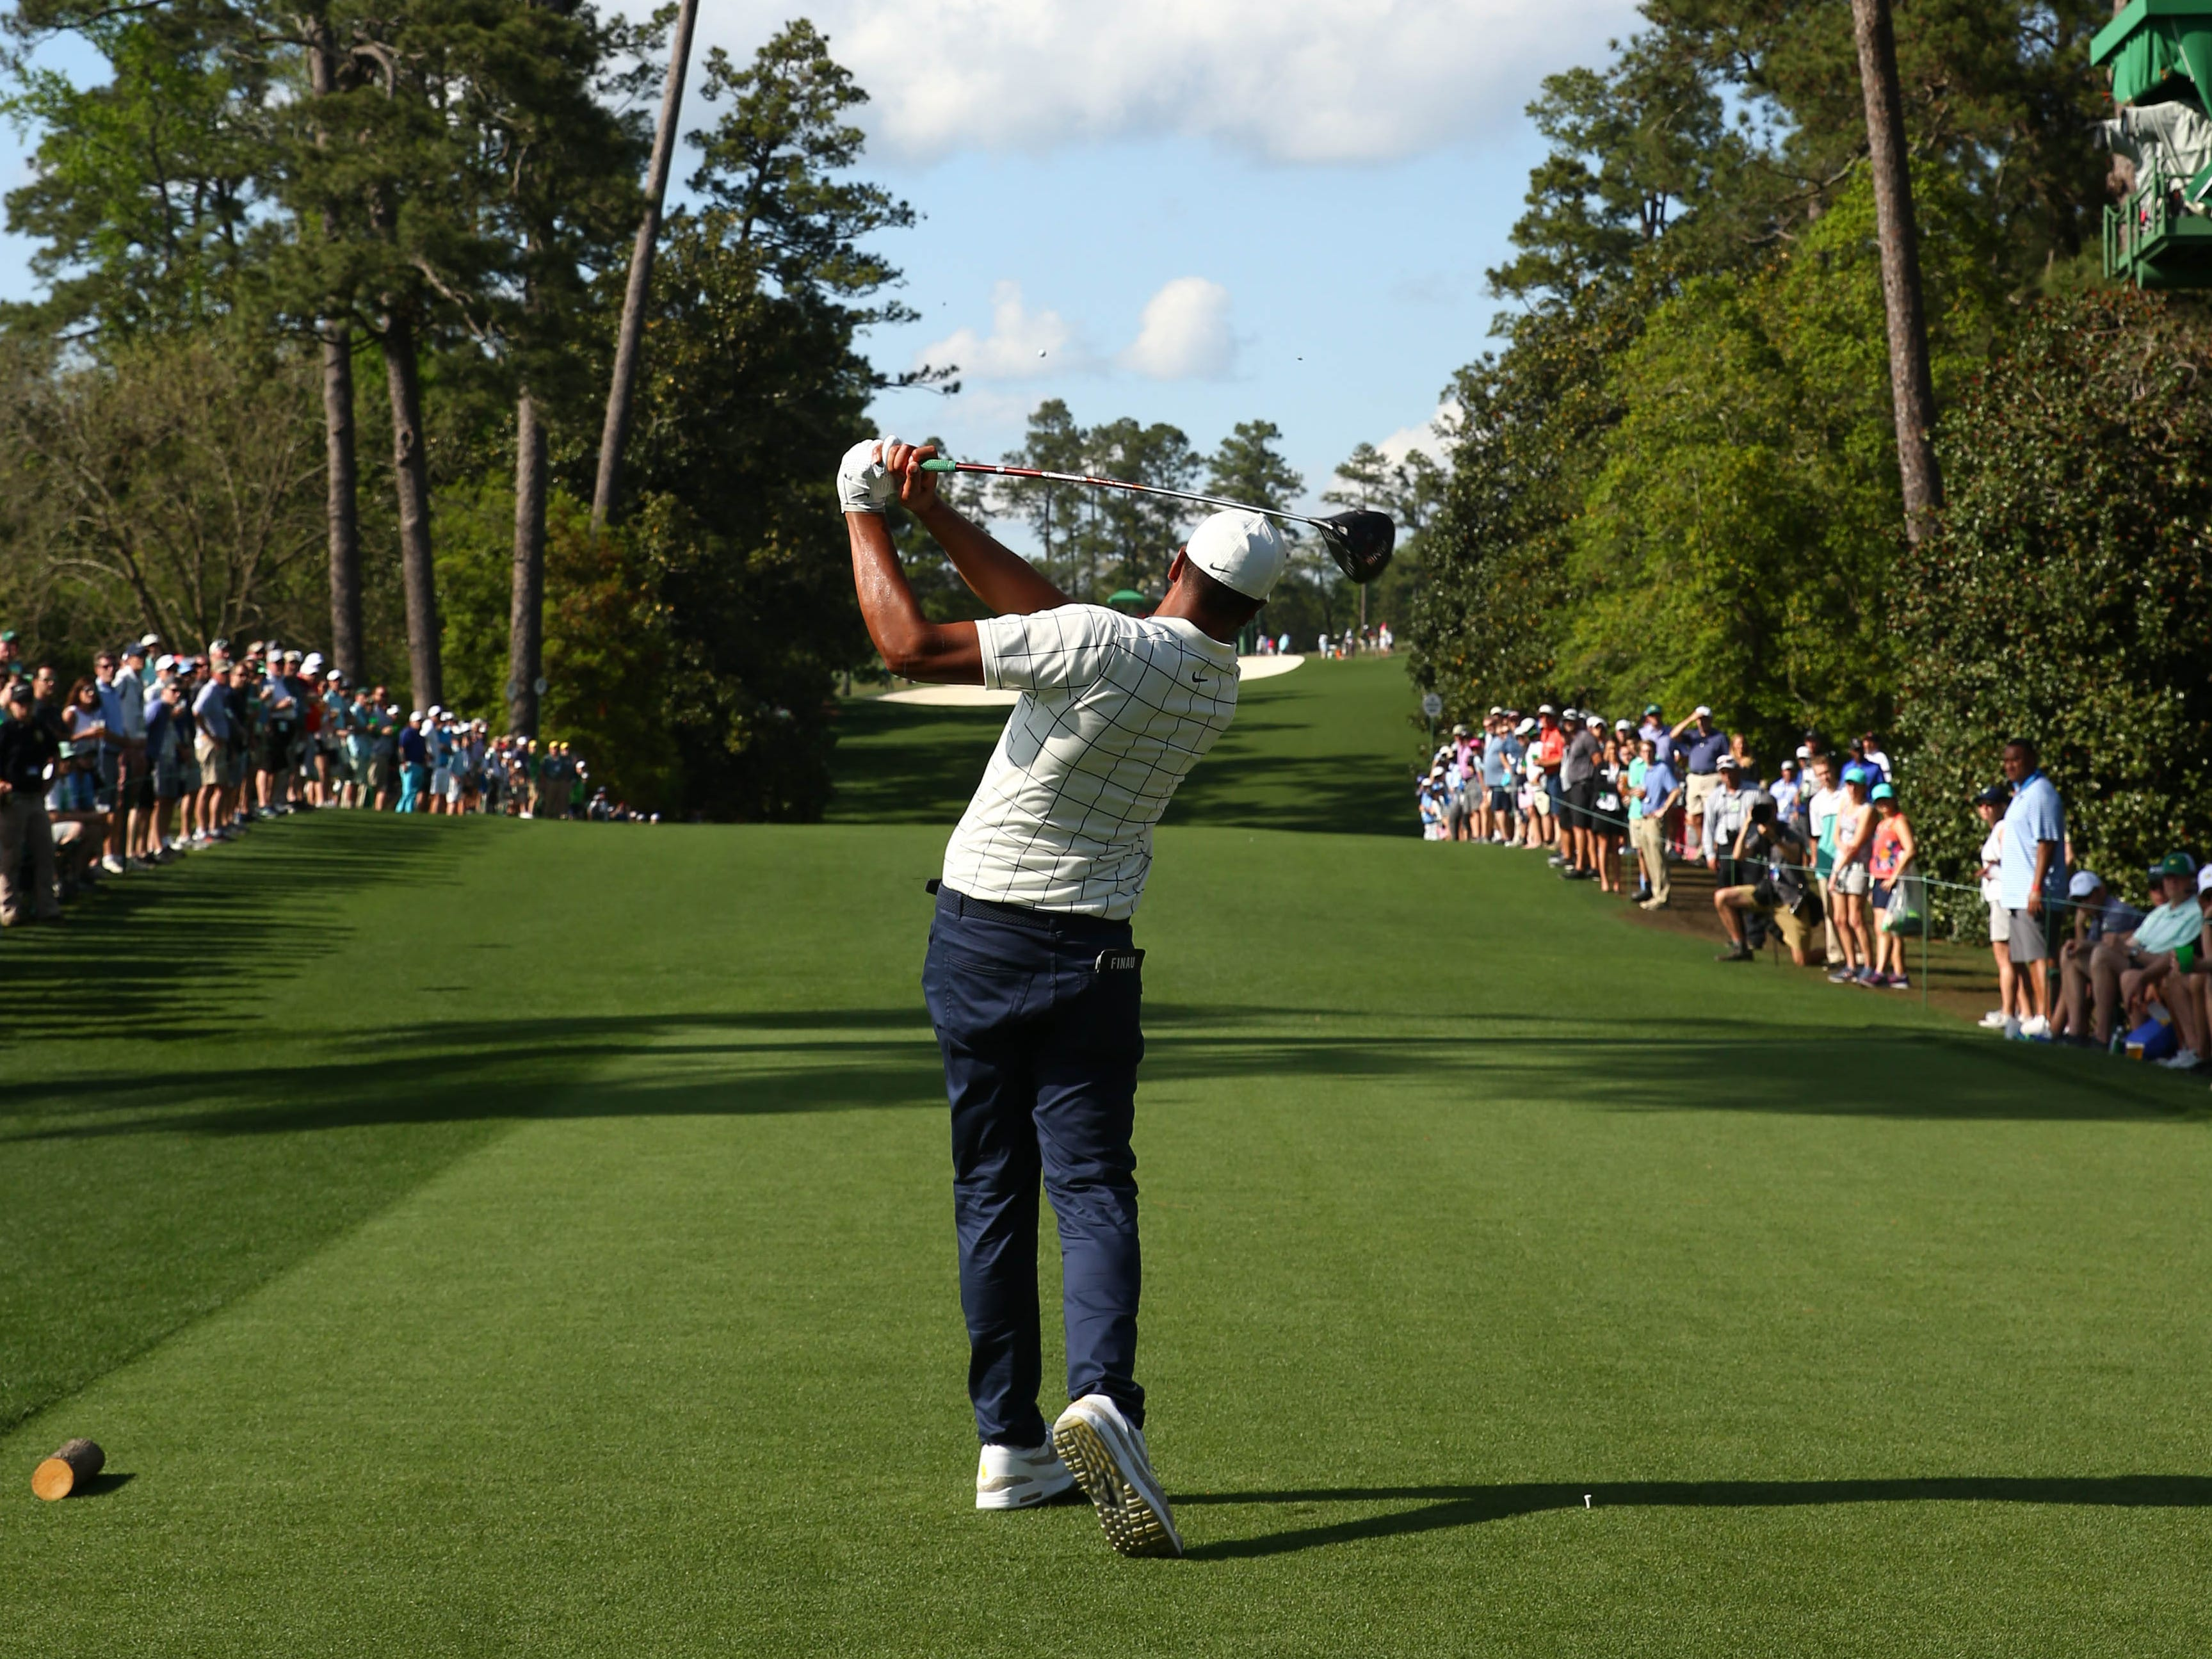 Tony Finau hits his tee shot on the 18th hole during the third round of the Masters.